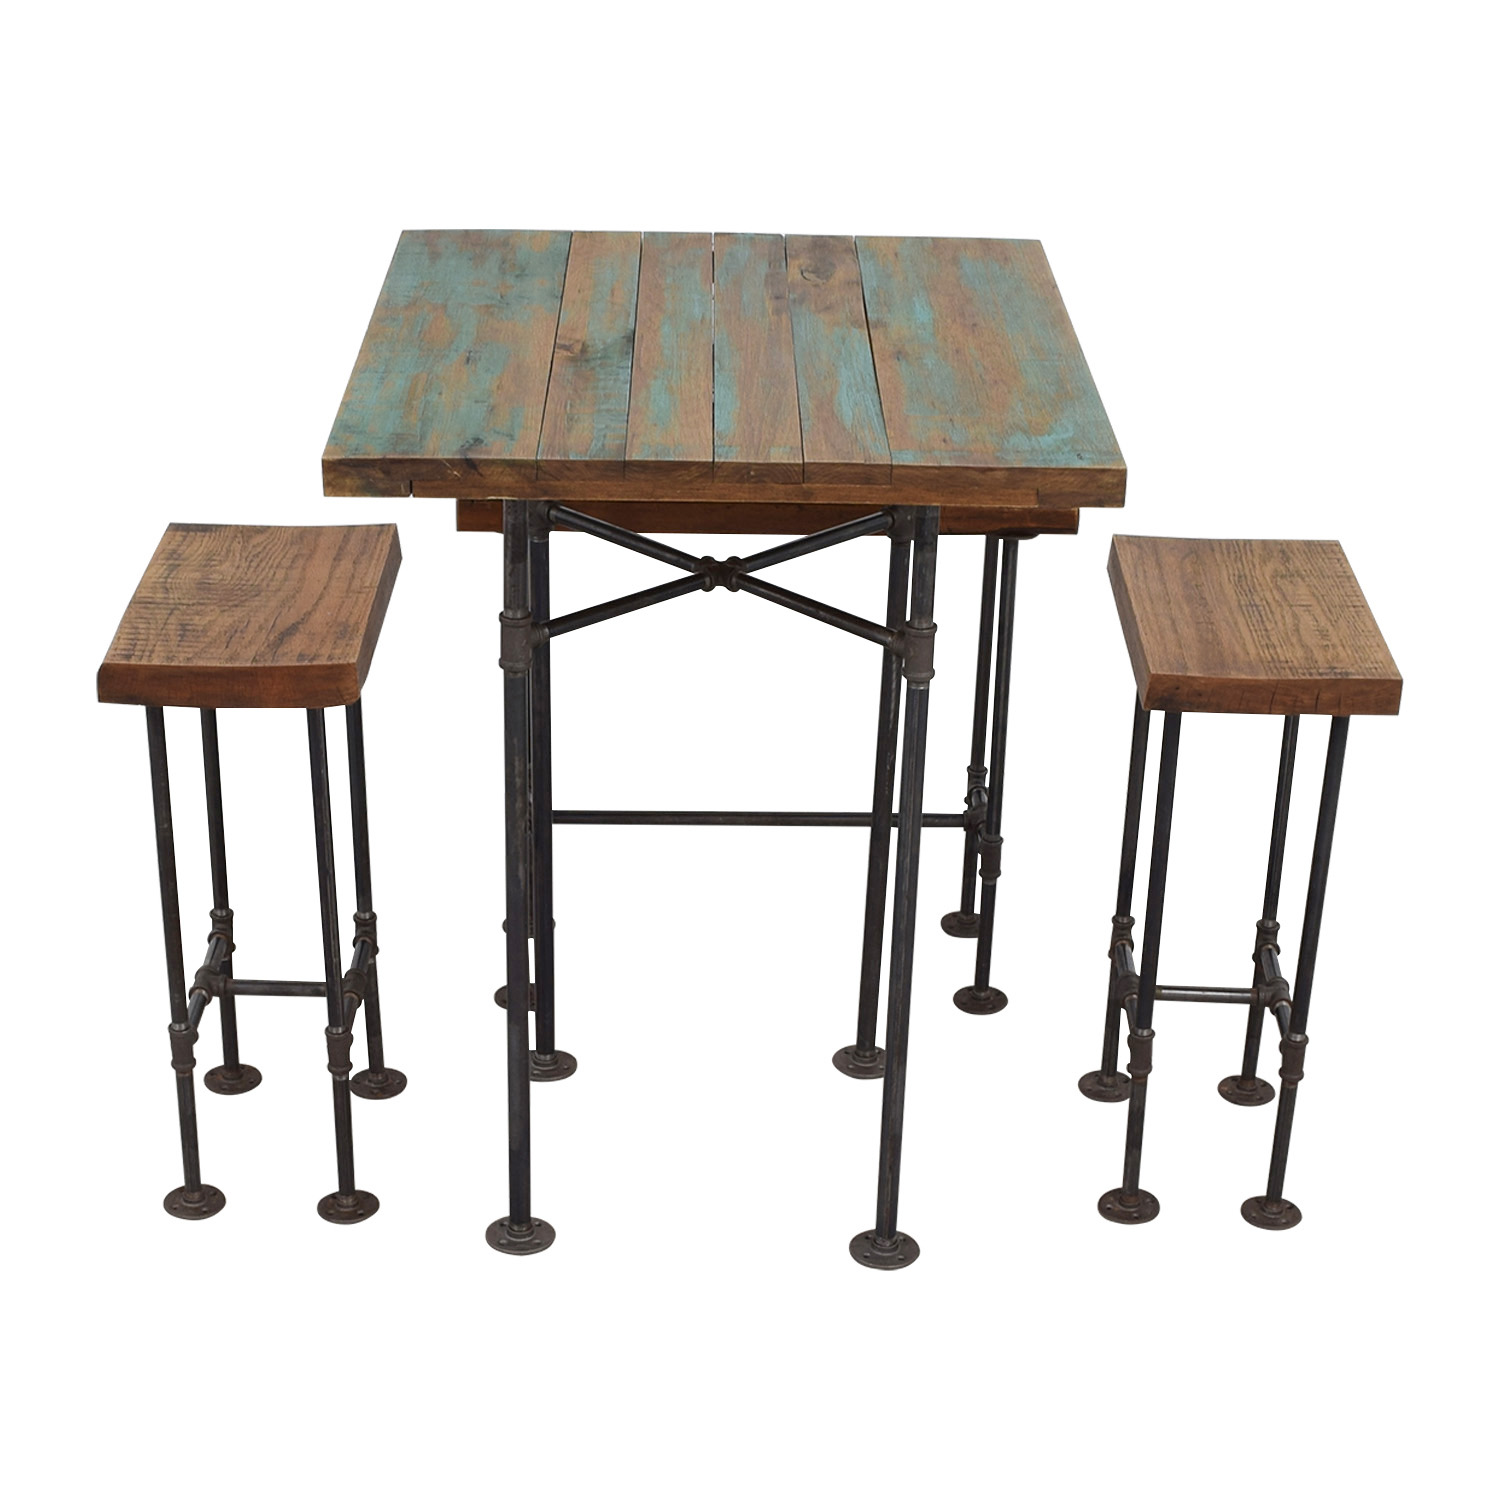 A Little of India A Little of India Industrial Reclaimed Wood Counter Table and Stools for sale